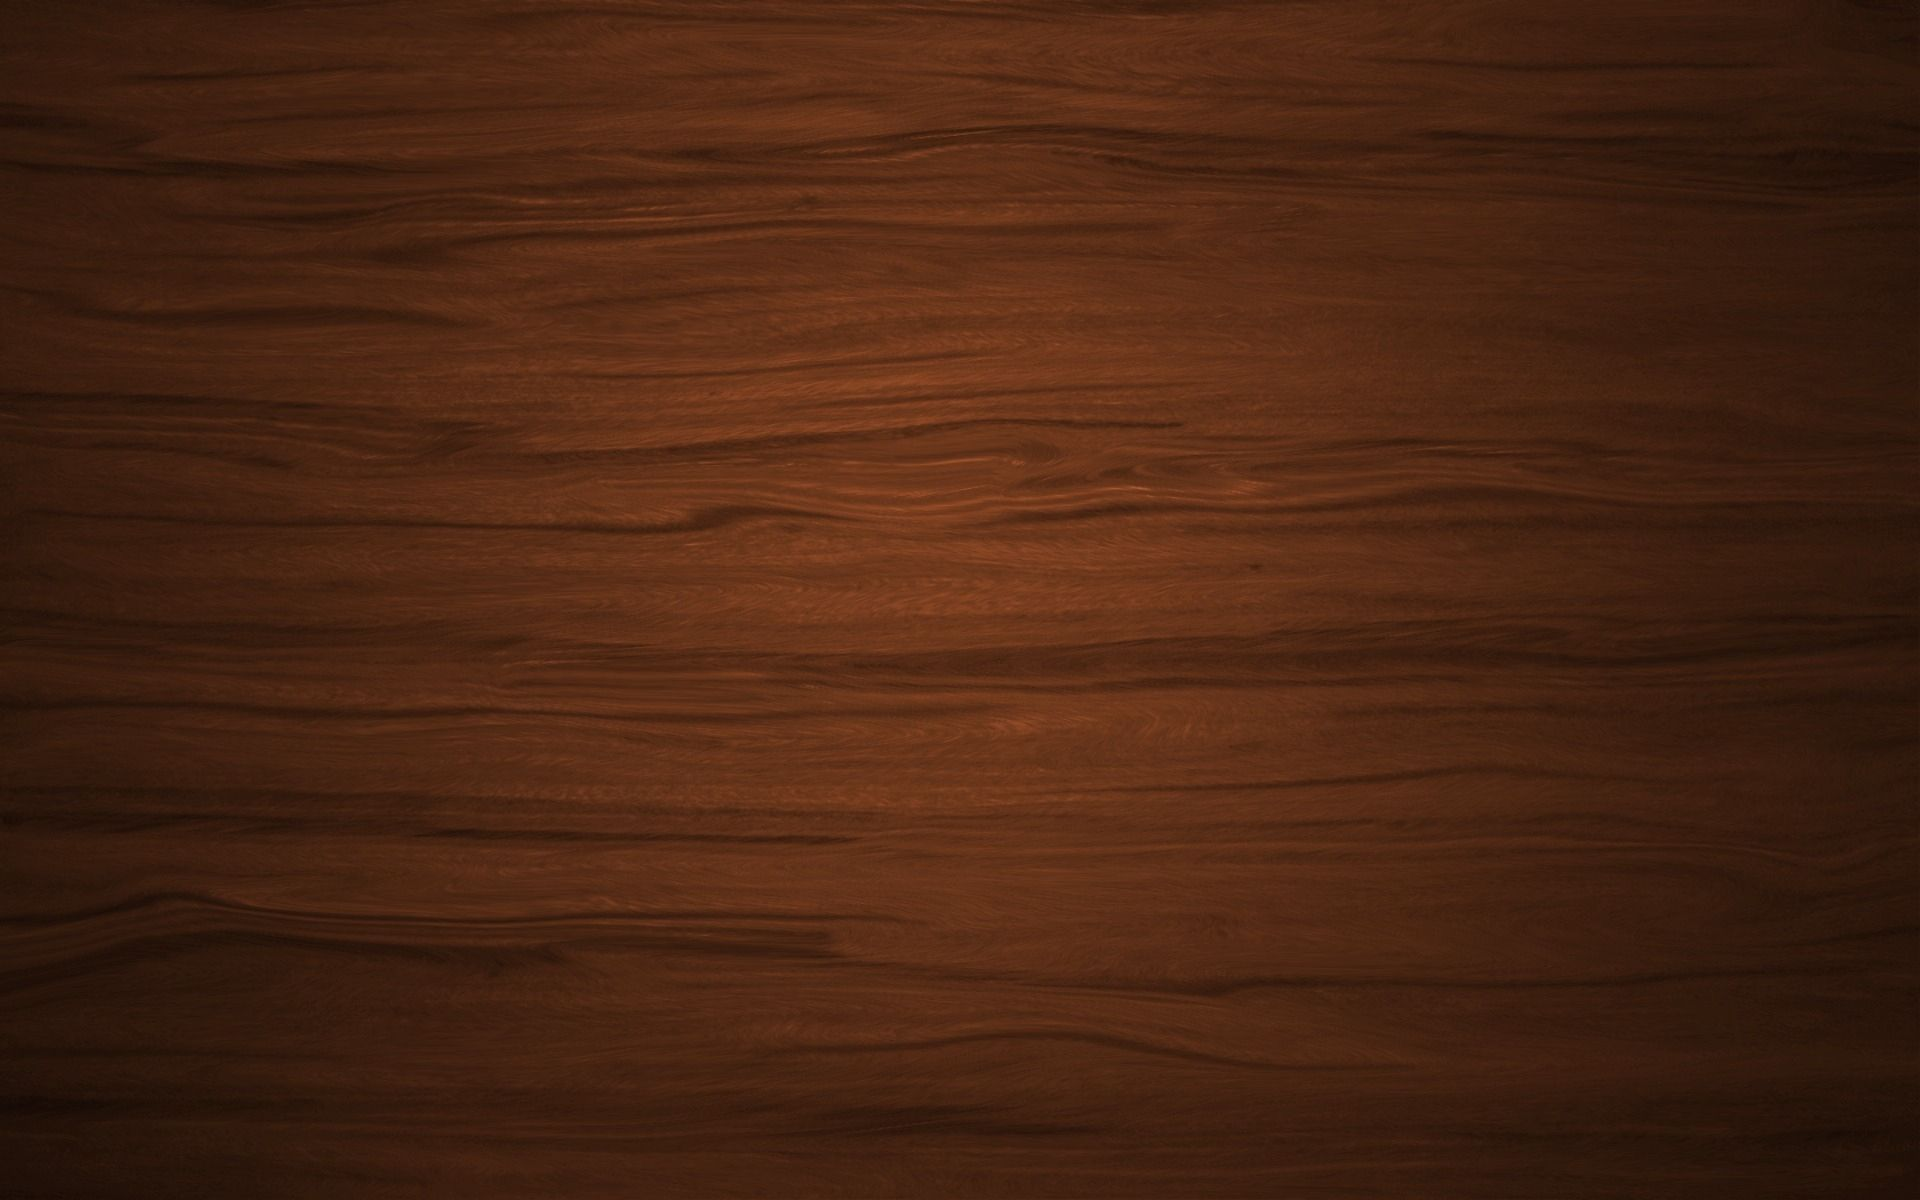 wood textures wood texture Wallpaper | Texturas | Wood ...